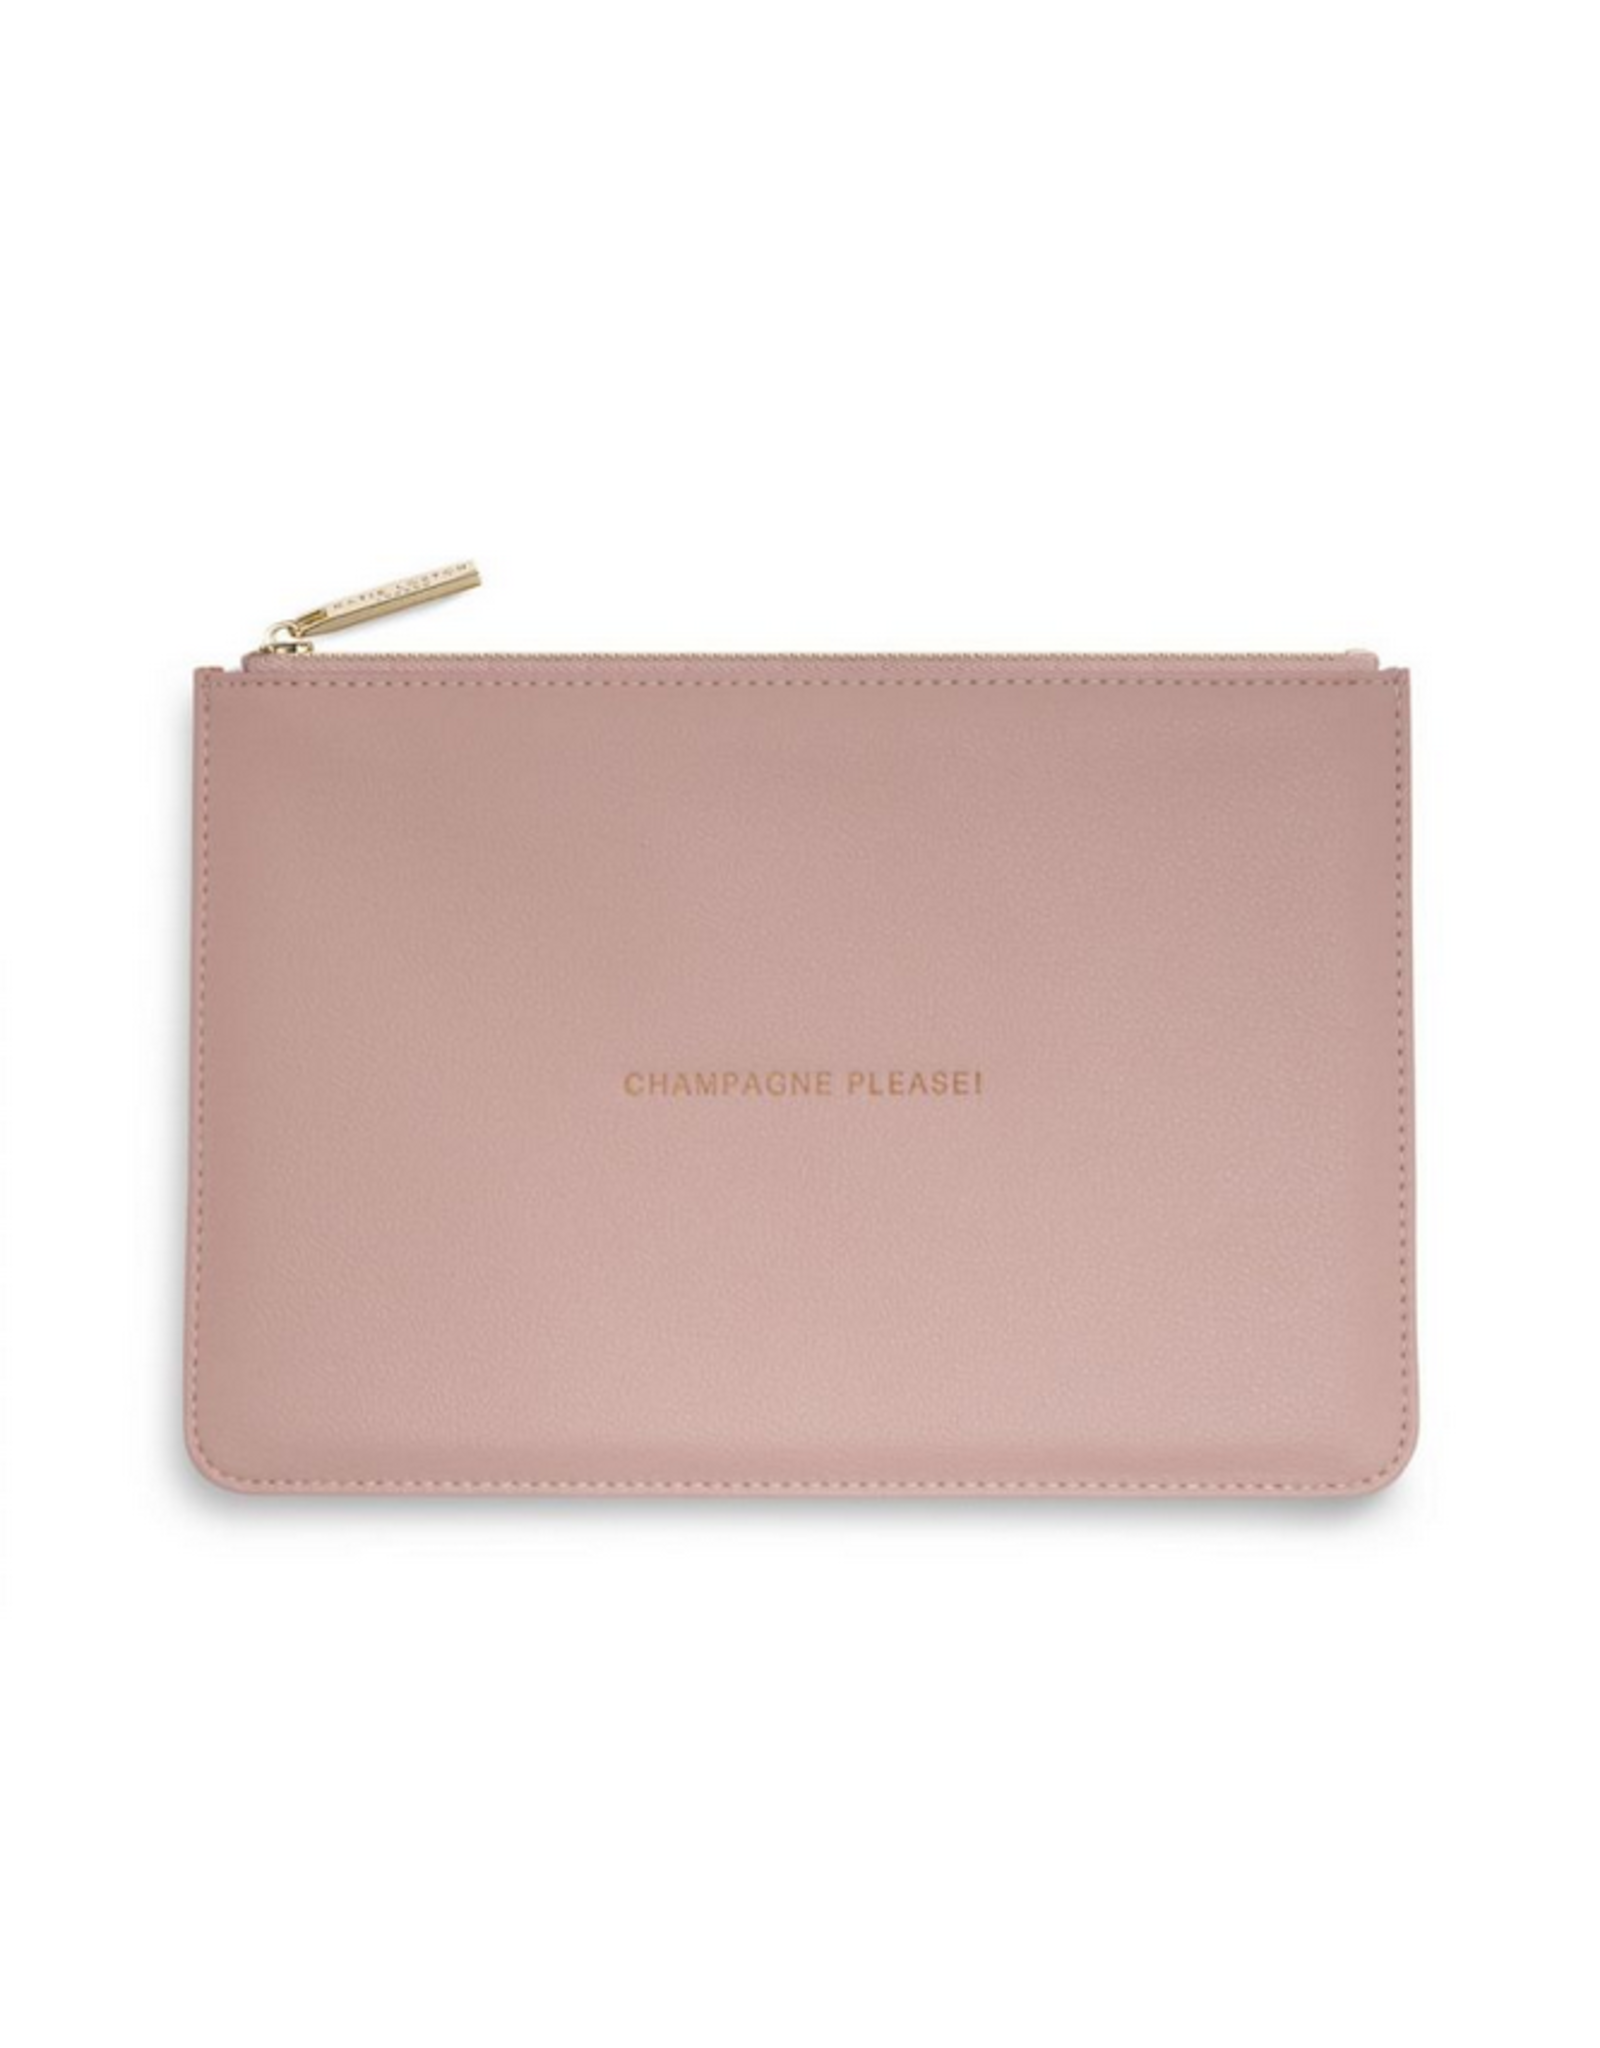 Katie Loxton Champagne Please Perfect Pouch in Pink